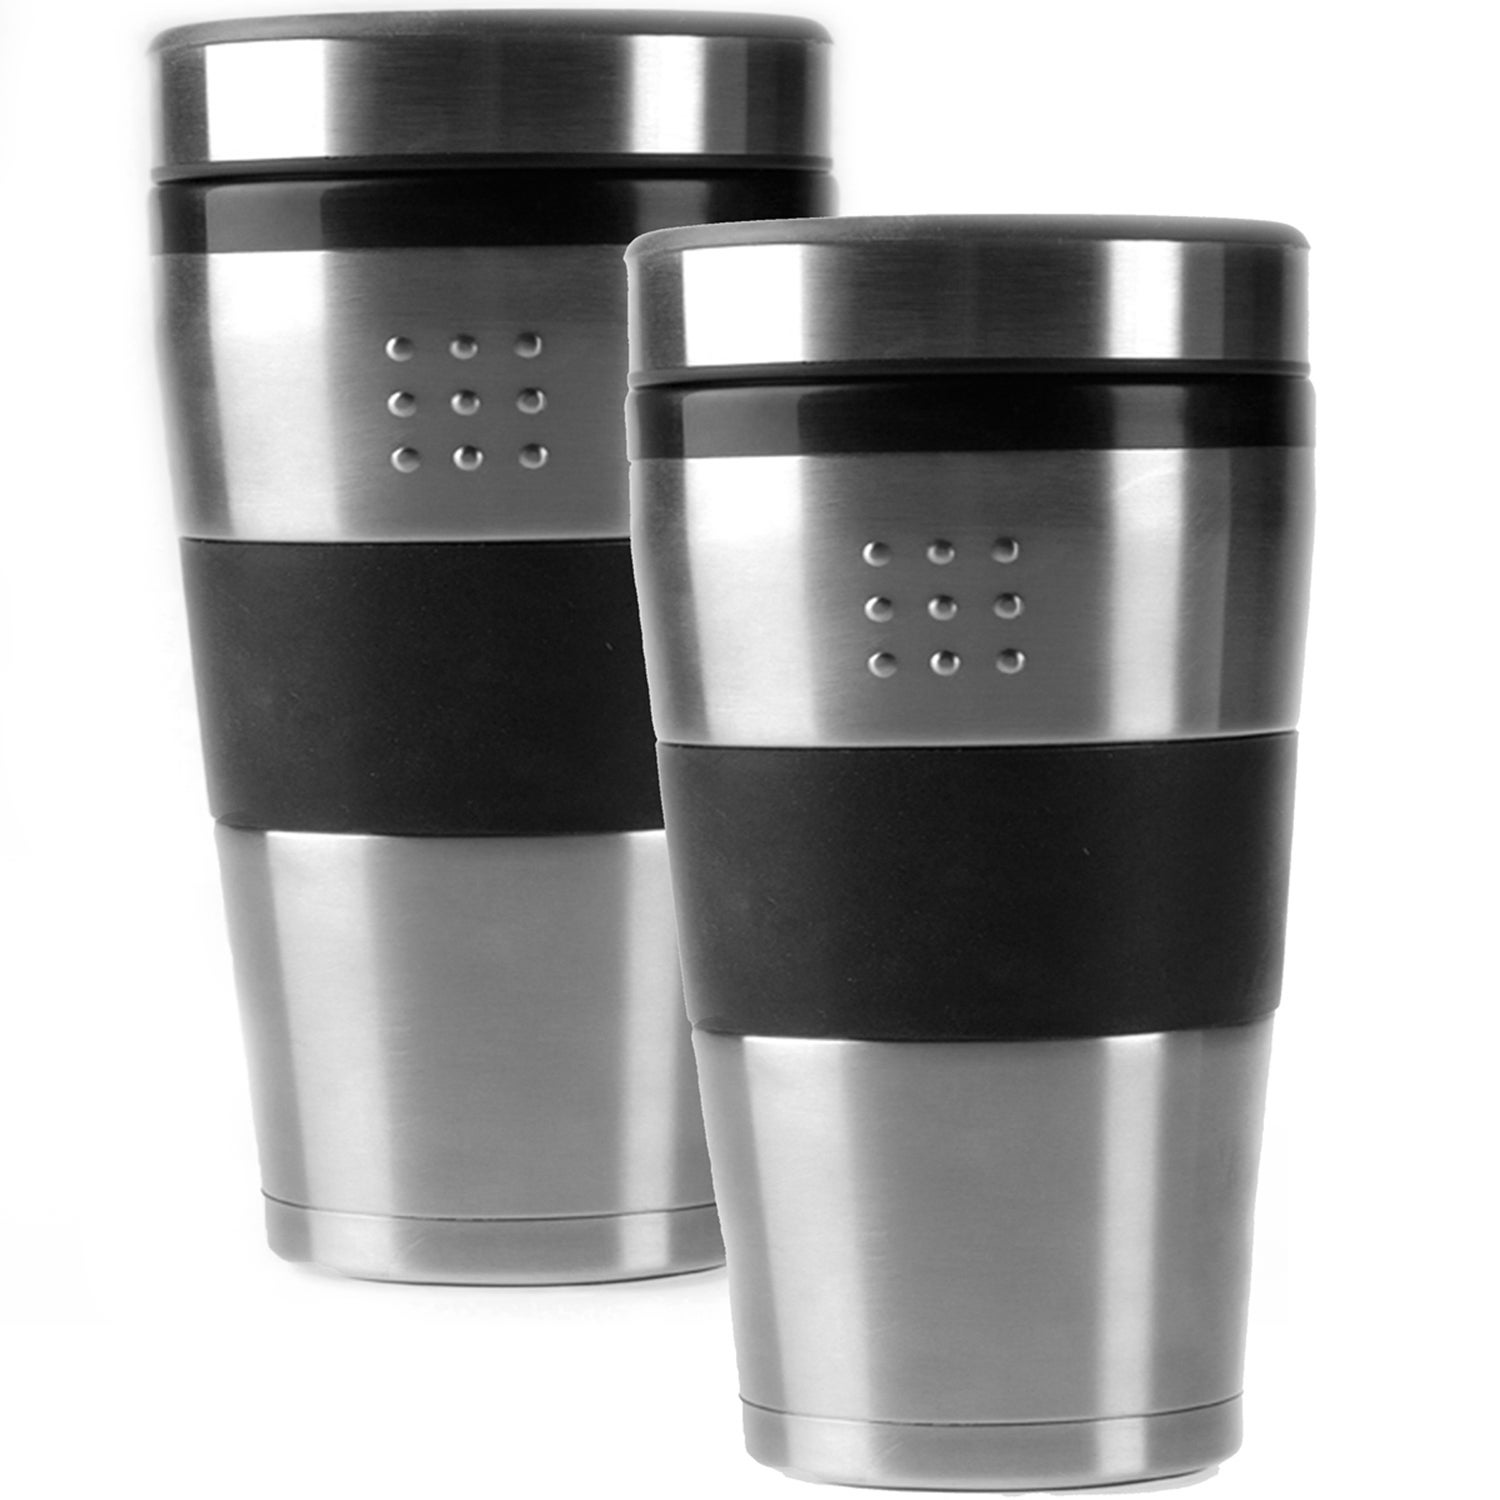 Berghoff Orion 2 Piece 16 Ounce Stainless Steel Travel Mugs Overstock 10389645